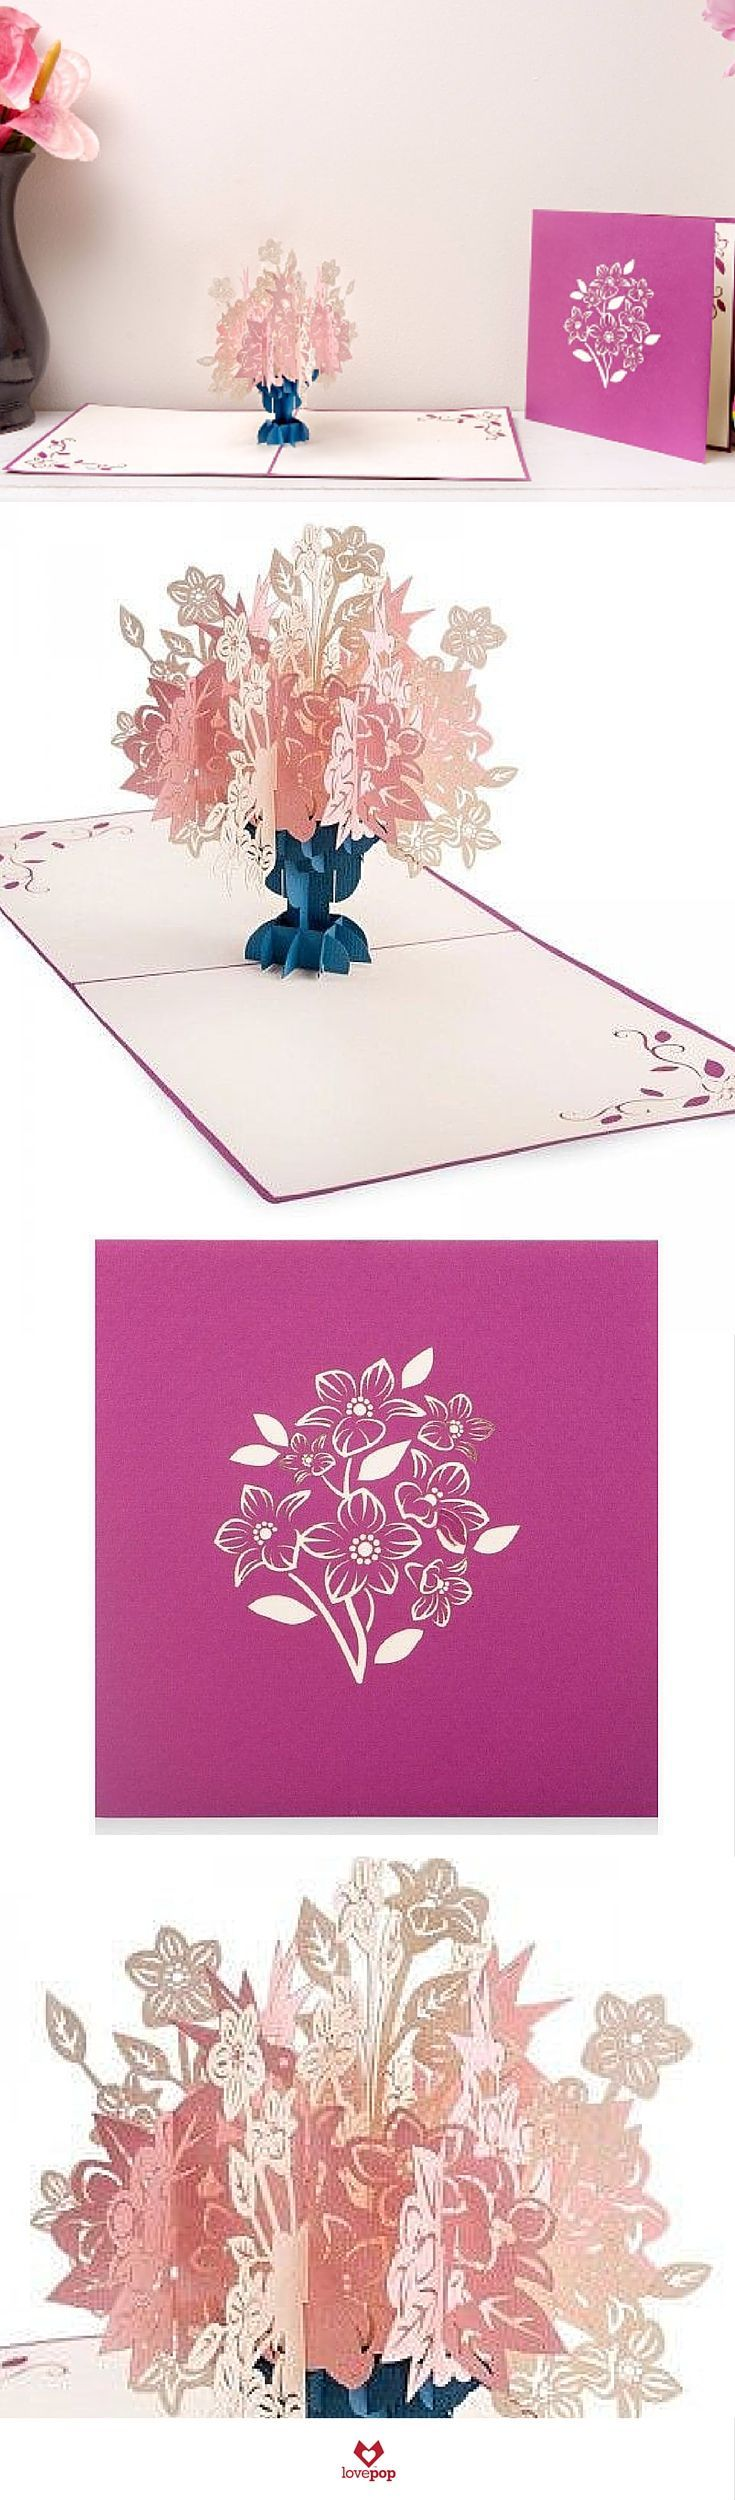 A bundle of purple flowers adorns the purple cover of this floral greeting card. Open the card to a lush surprise of white and pink flowers in a beautiful arrangement. Floral entanglements embellish t